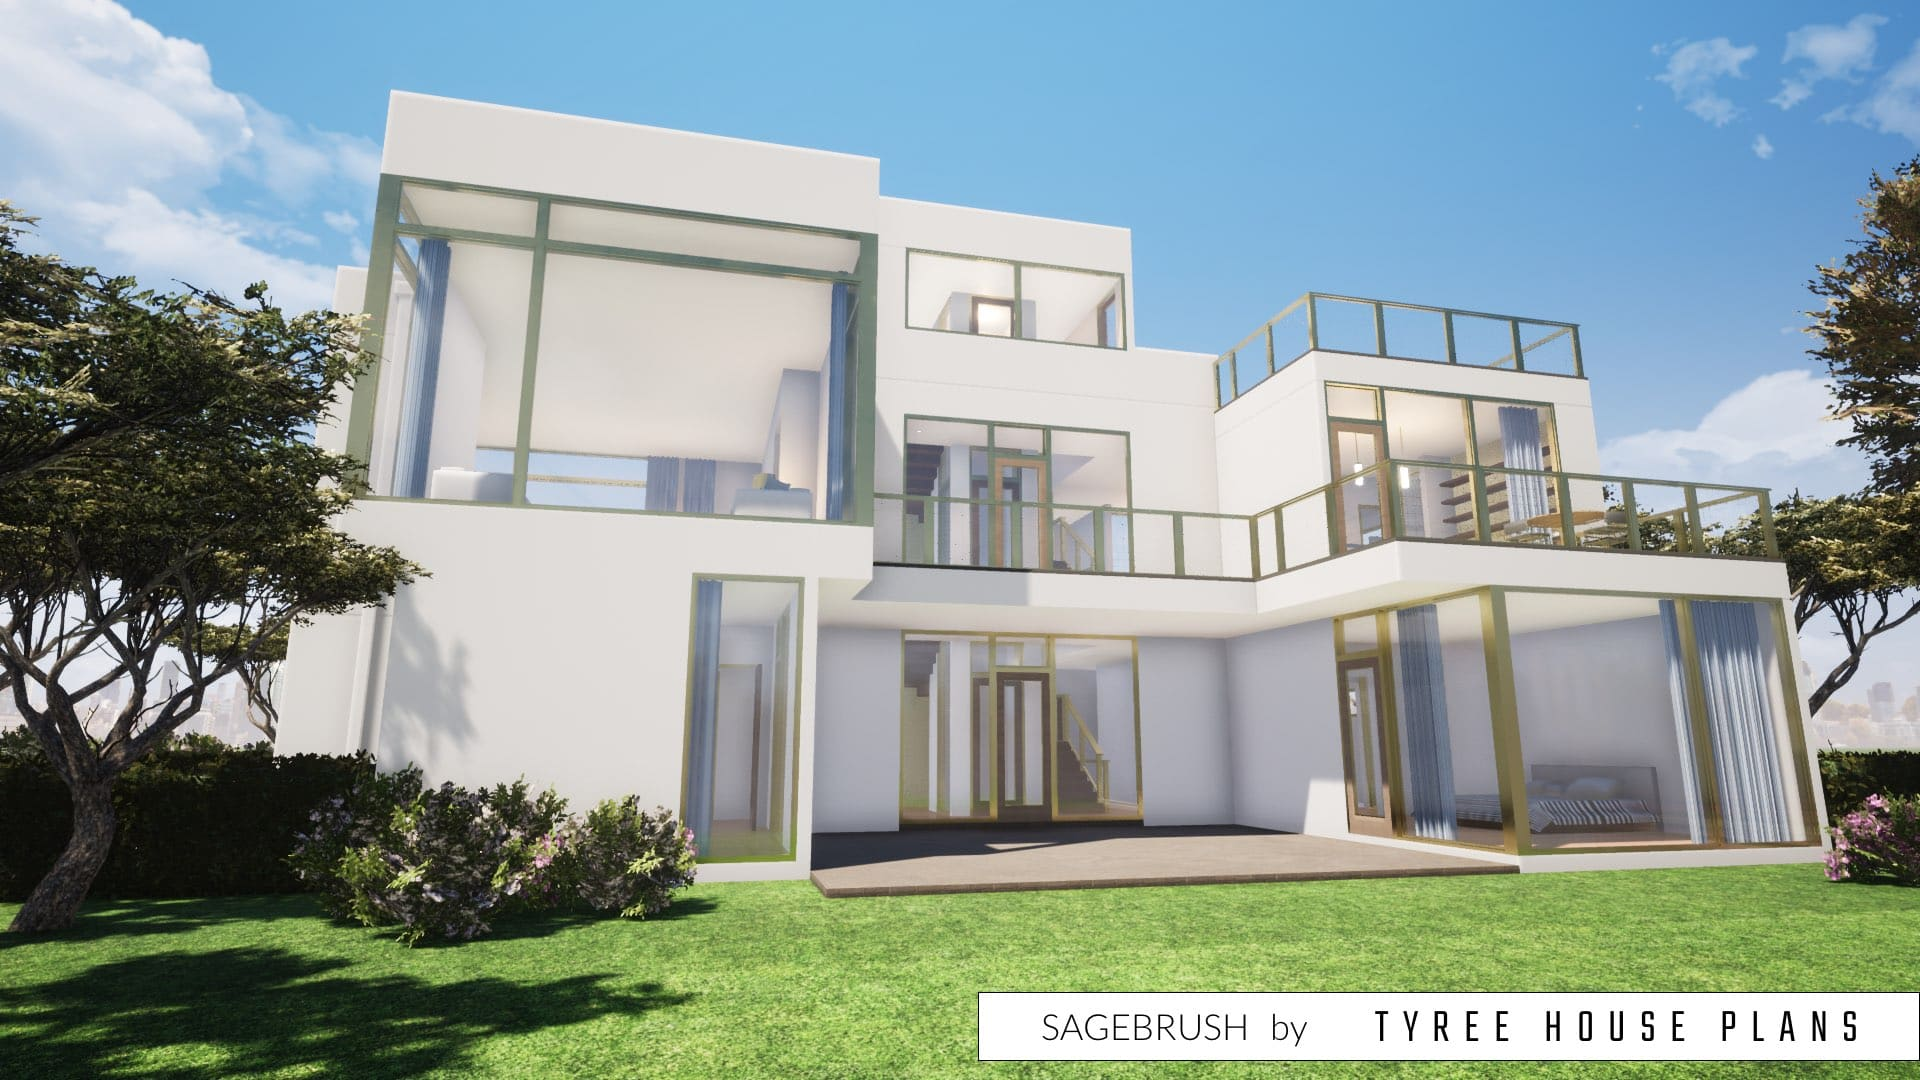 Sagebrush House Plan by Tyree House Plans